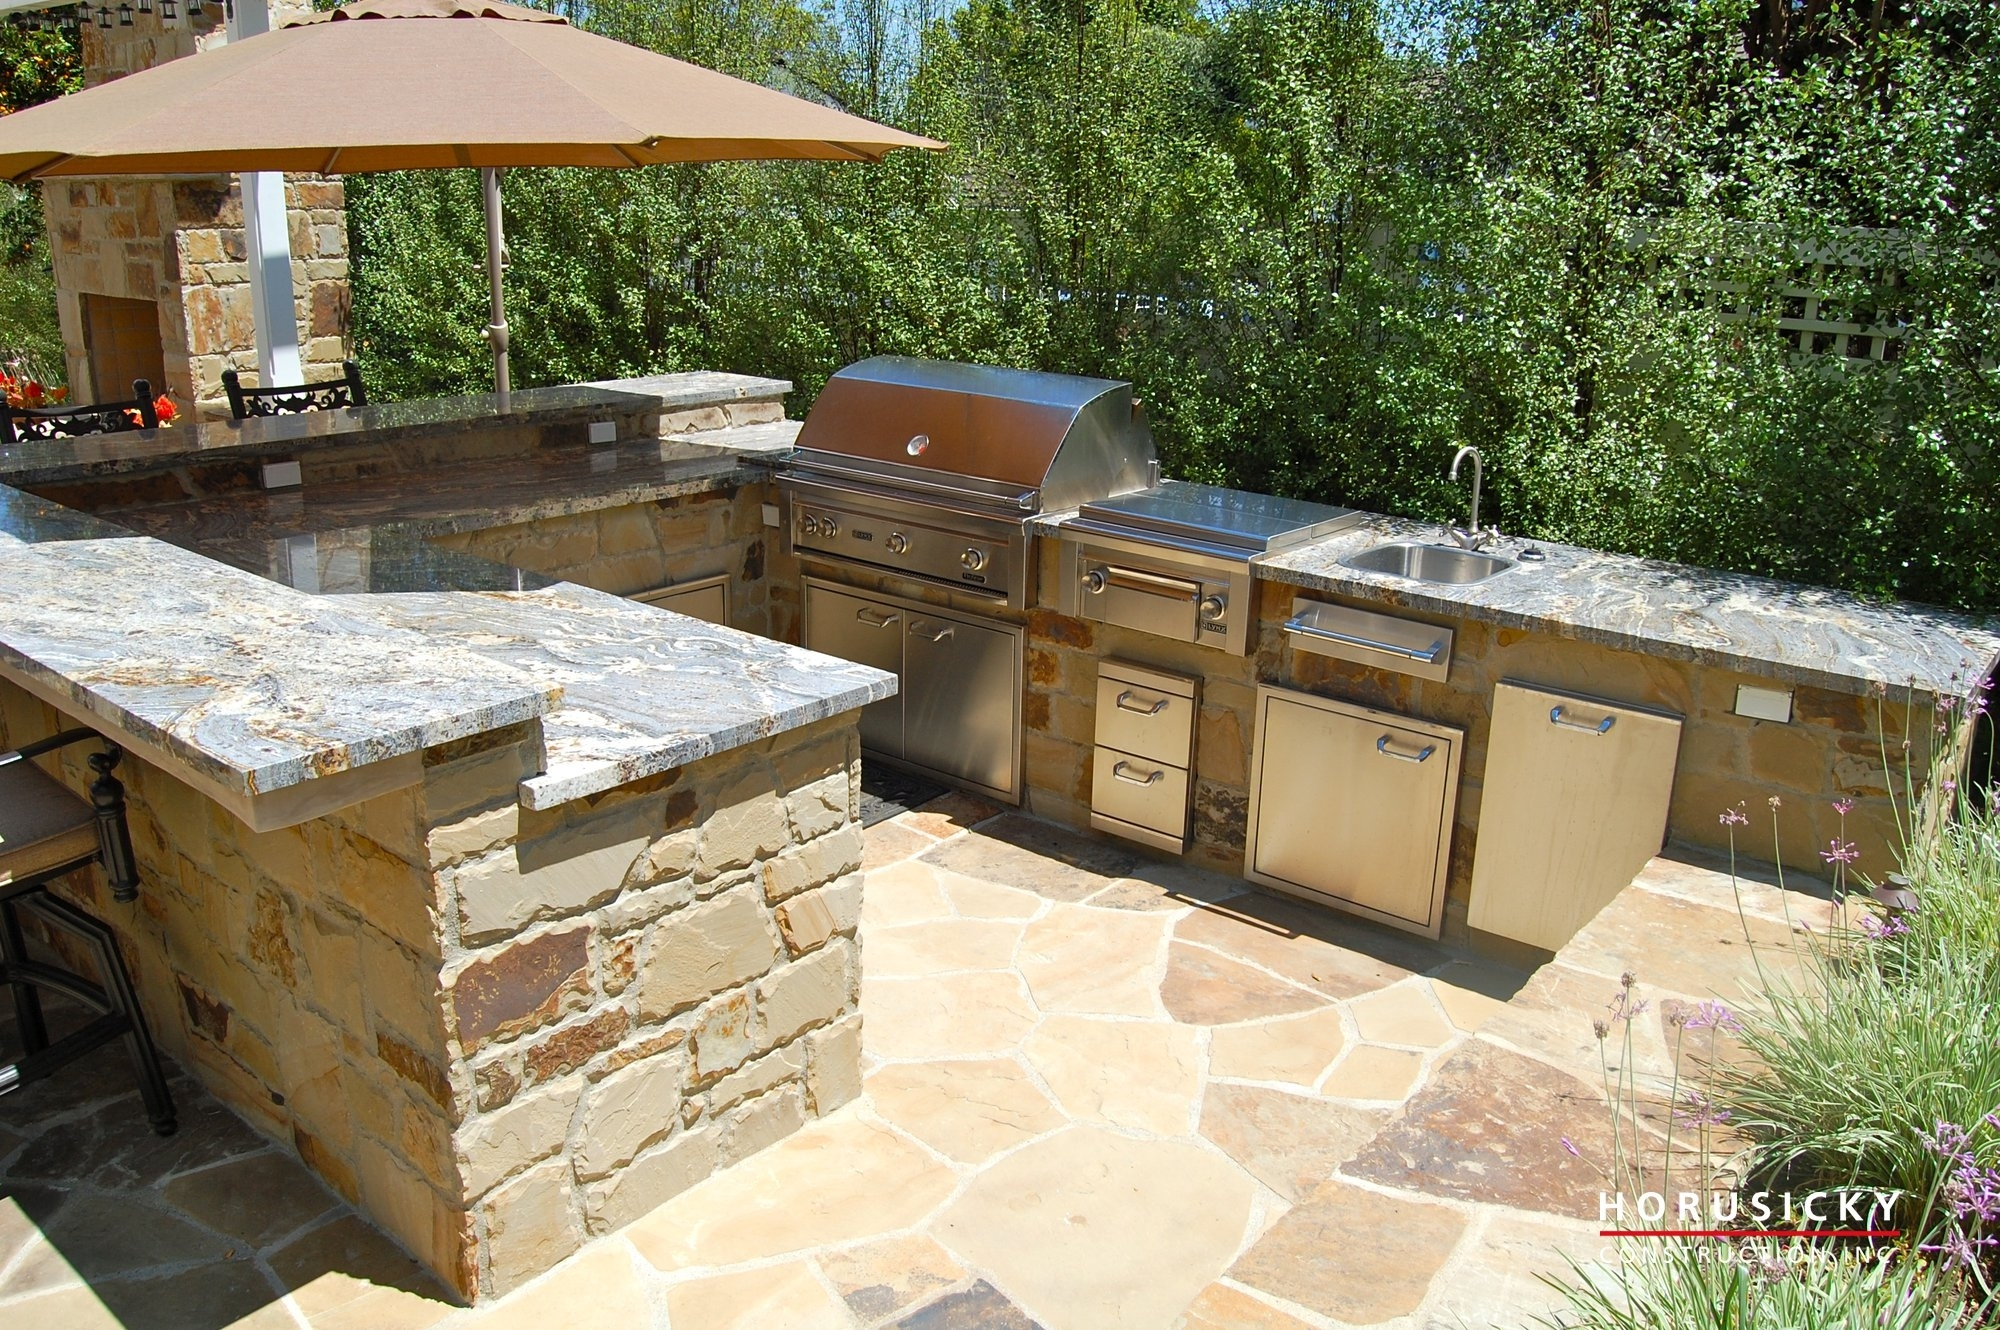 Image of: Outdoor Kitchens And Bbq Grills Horusicky Construction Within Bbq Outdoor Kitchens Bbq Outdoor Kitchens For Perfect Time